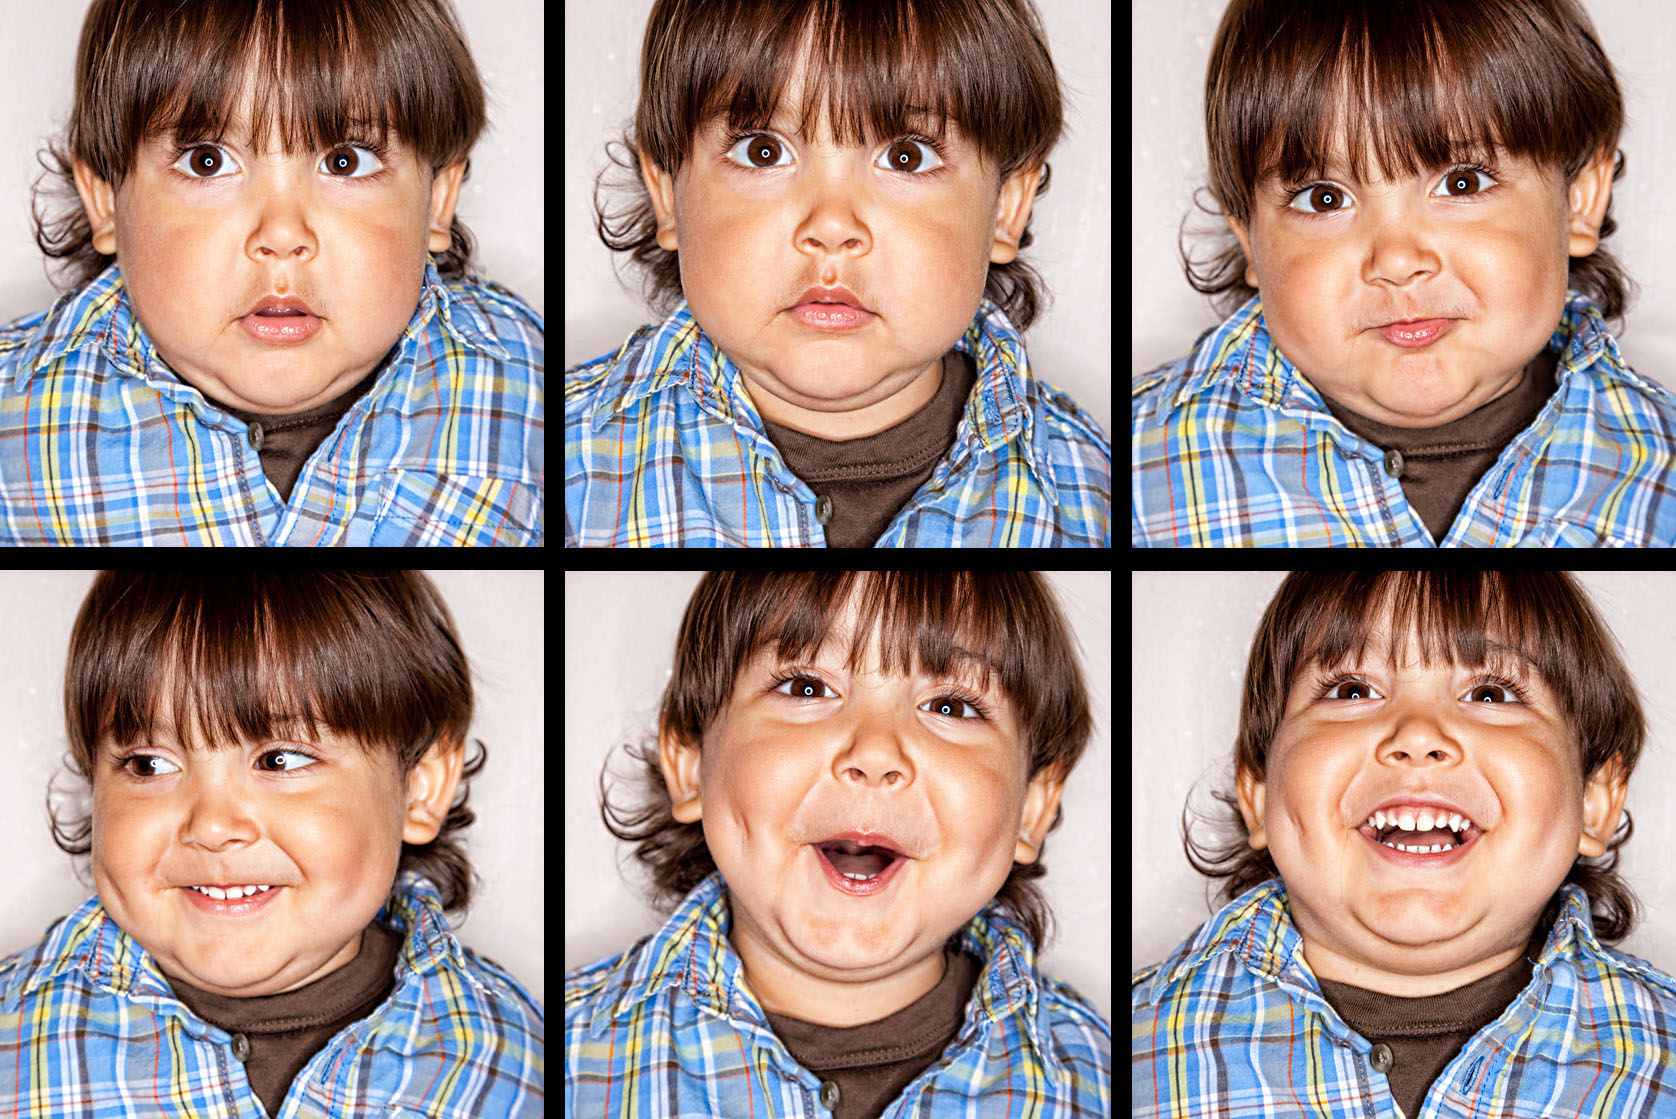 Series of 6 ring-lit portraits of young boy.